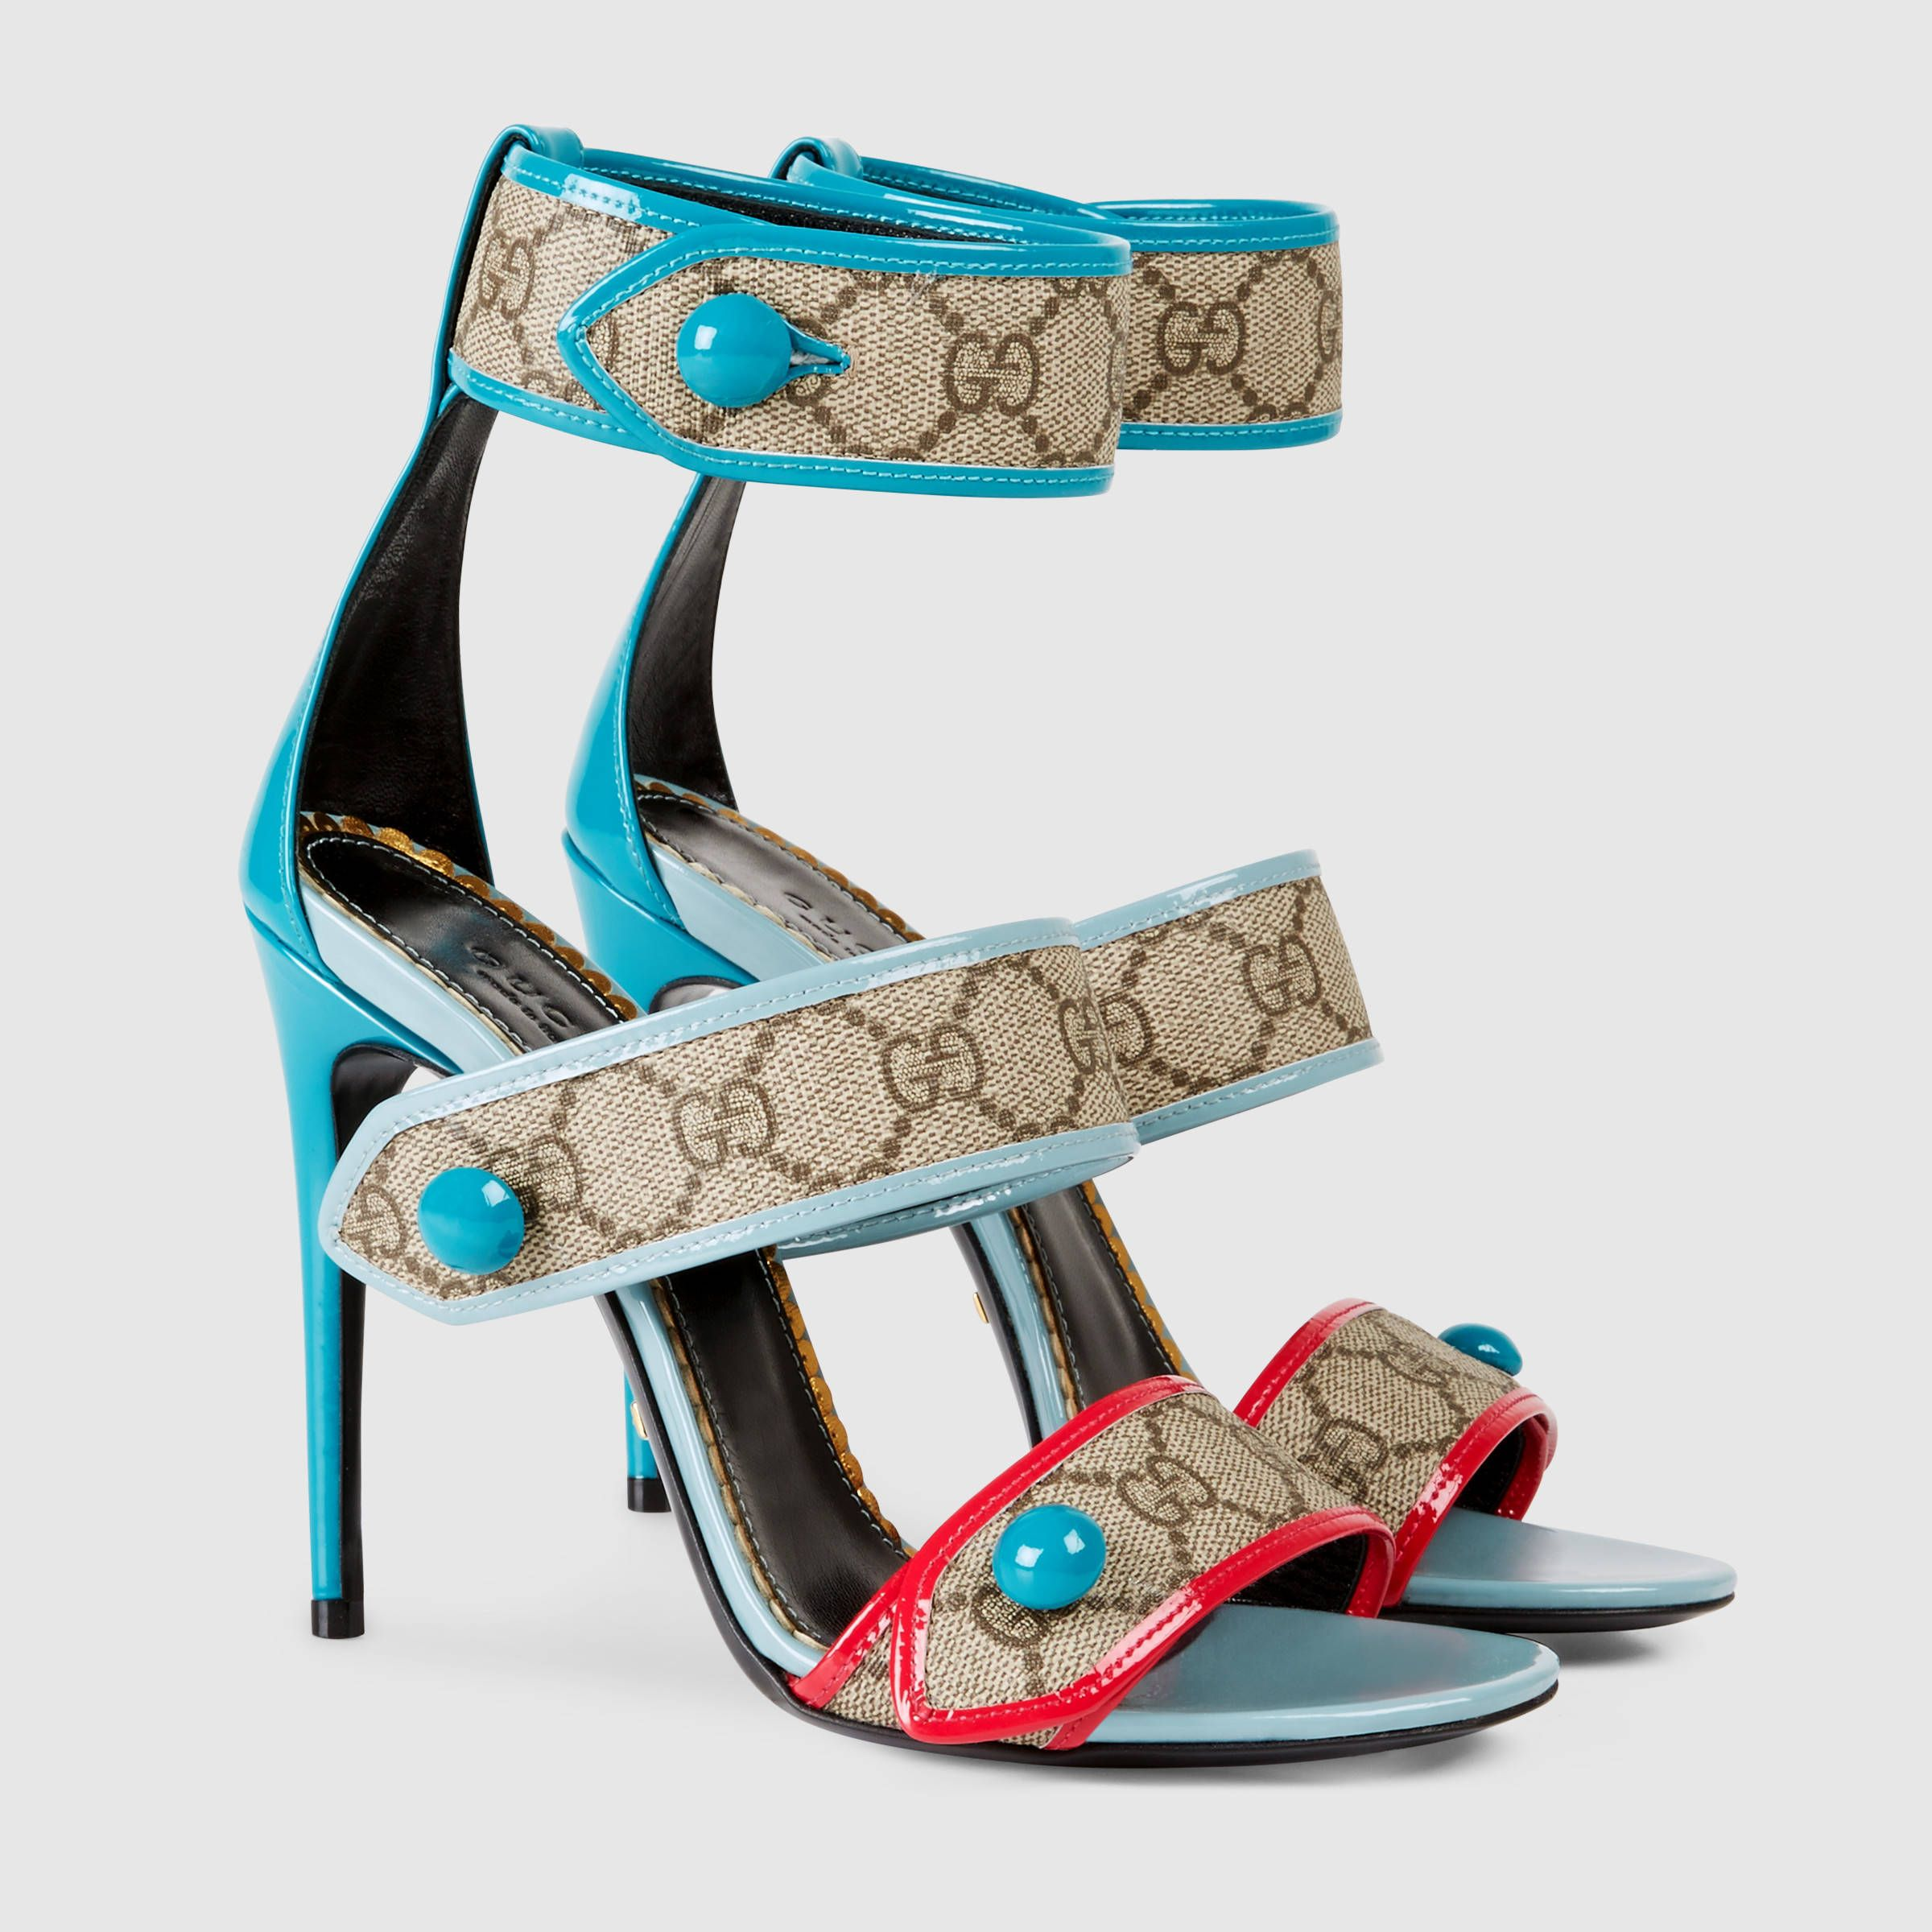 1eb2a7837 Gucci Women - Gucci GG Supreme Turquoise Canvas sandals - $795.00 ...